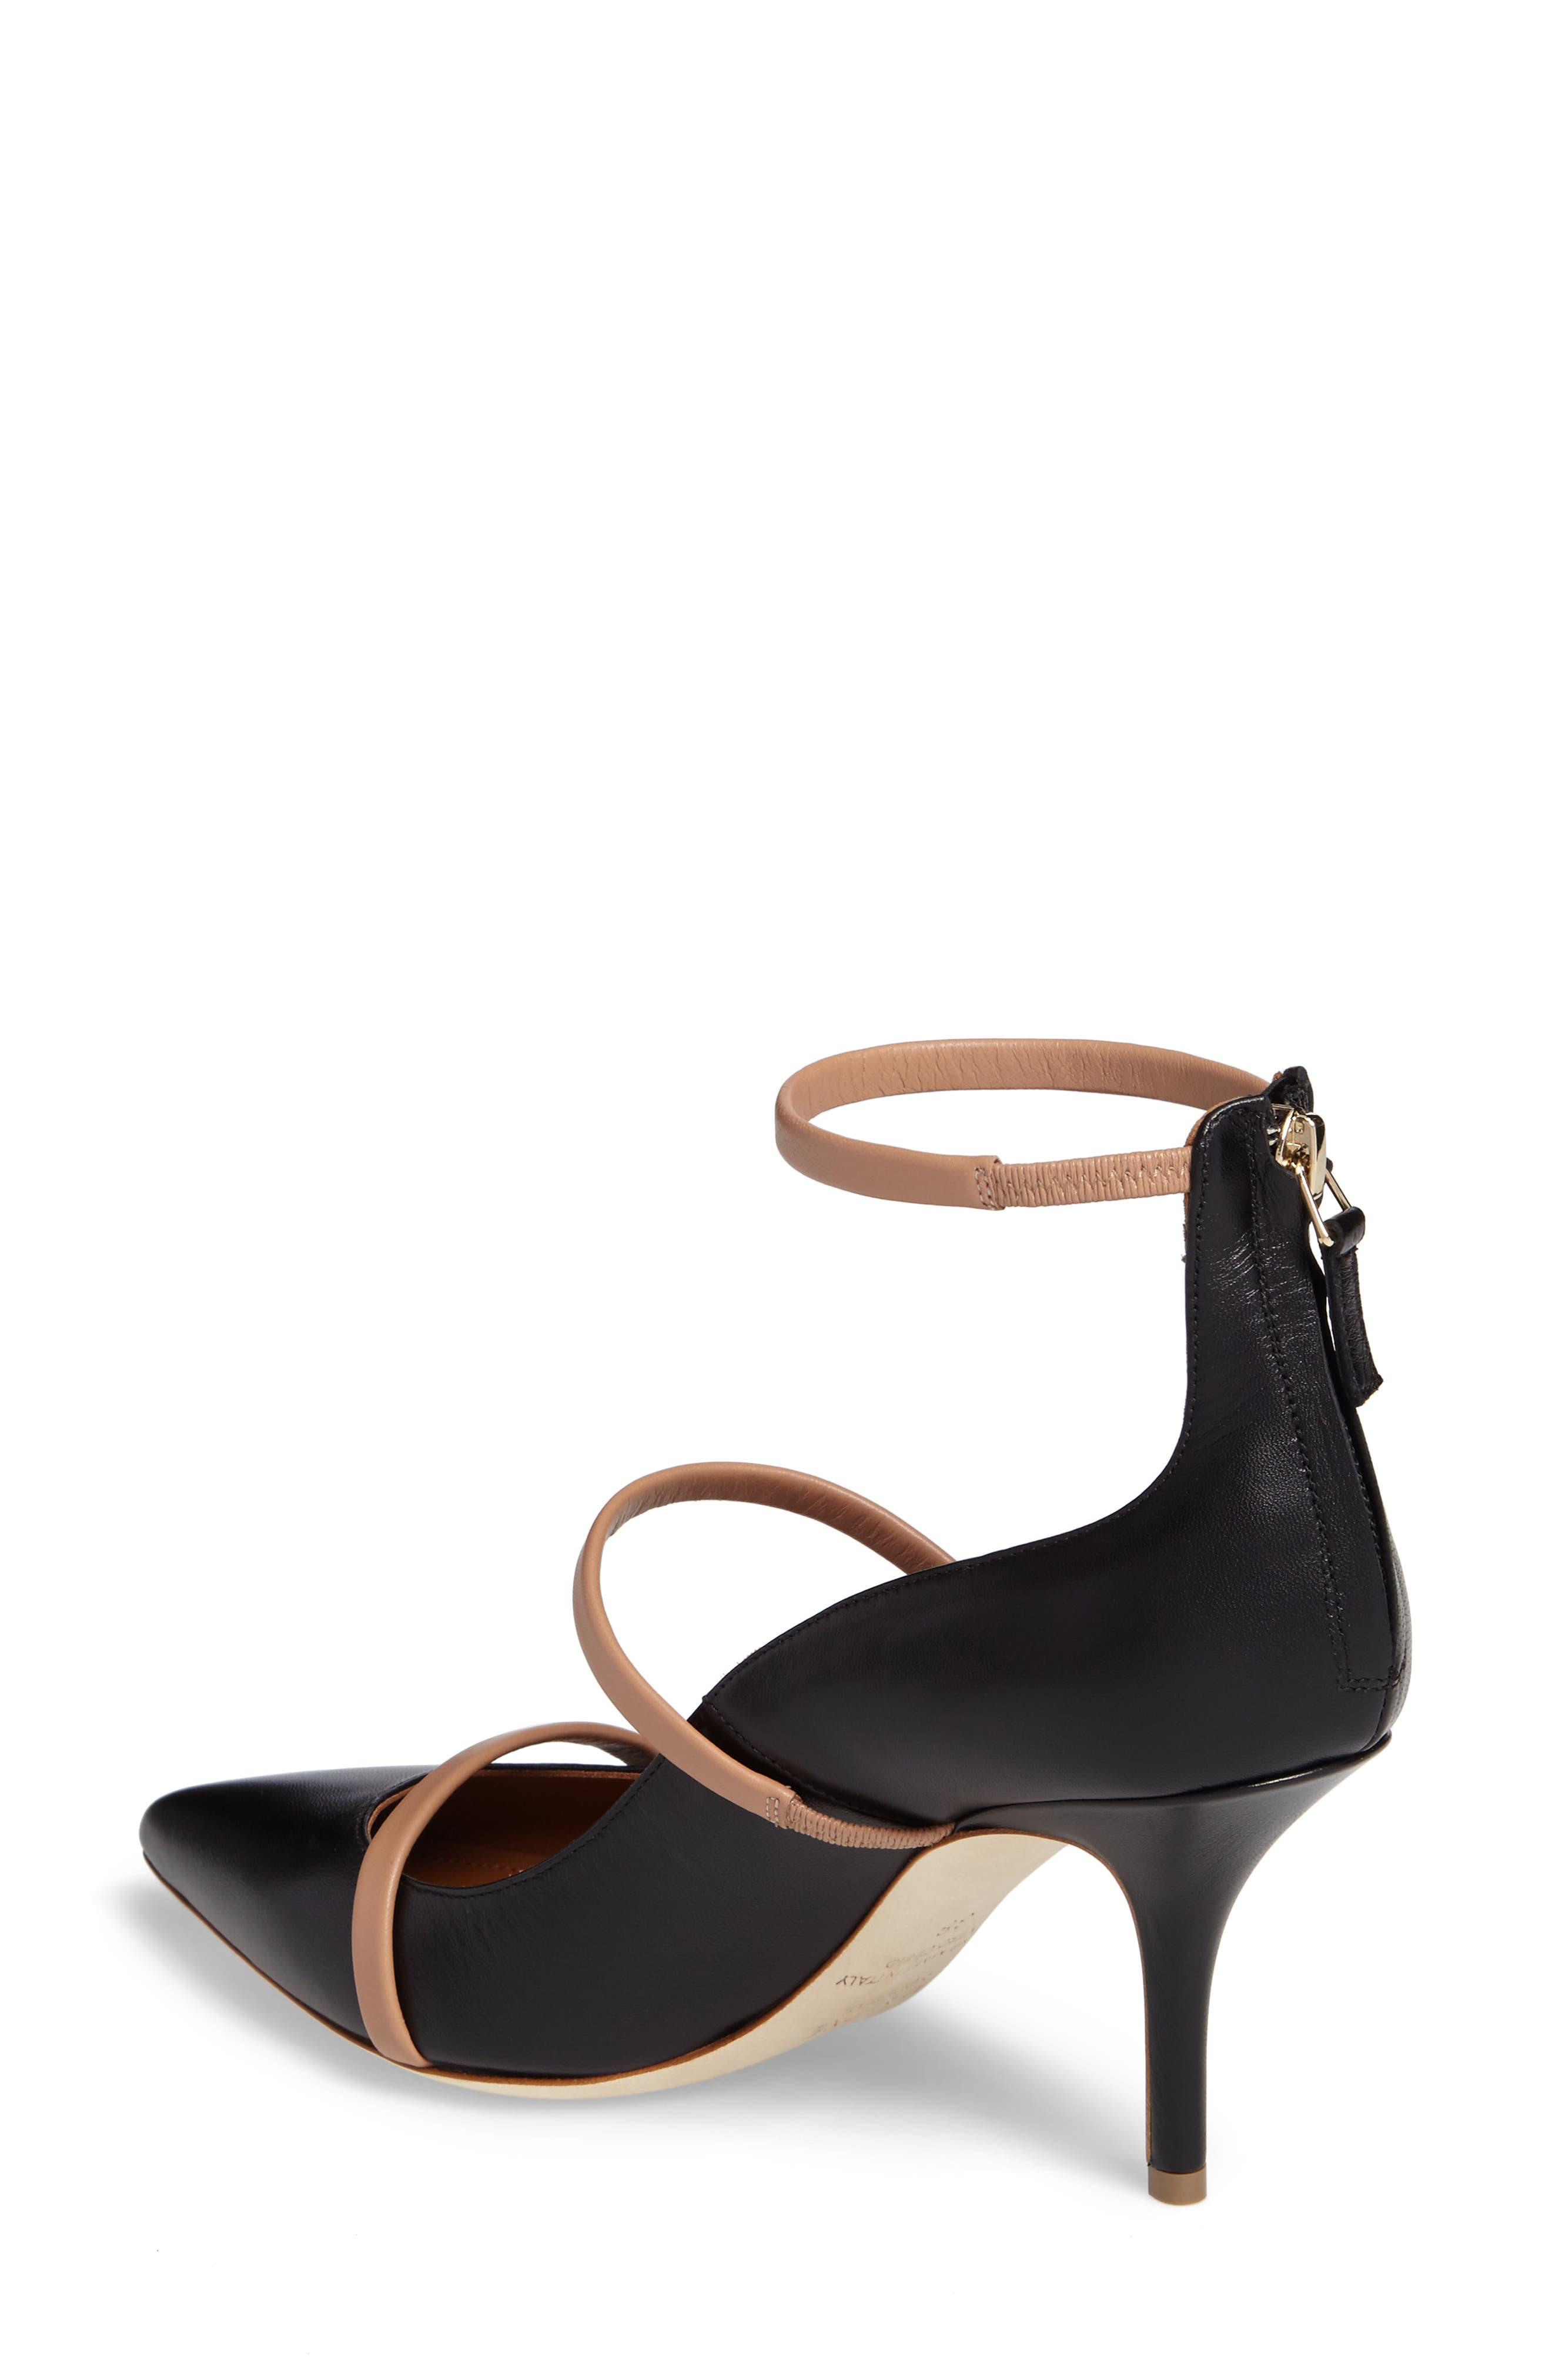 Robyn Ankle Strap Pump,                             Alternate thumbnail 2, color,                             BLACK/ NUDE